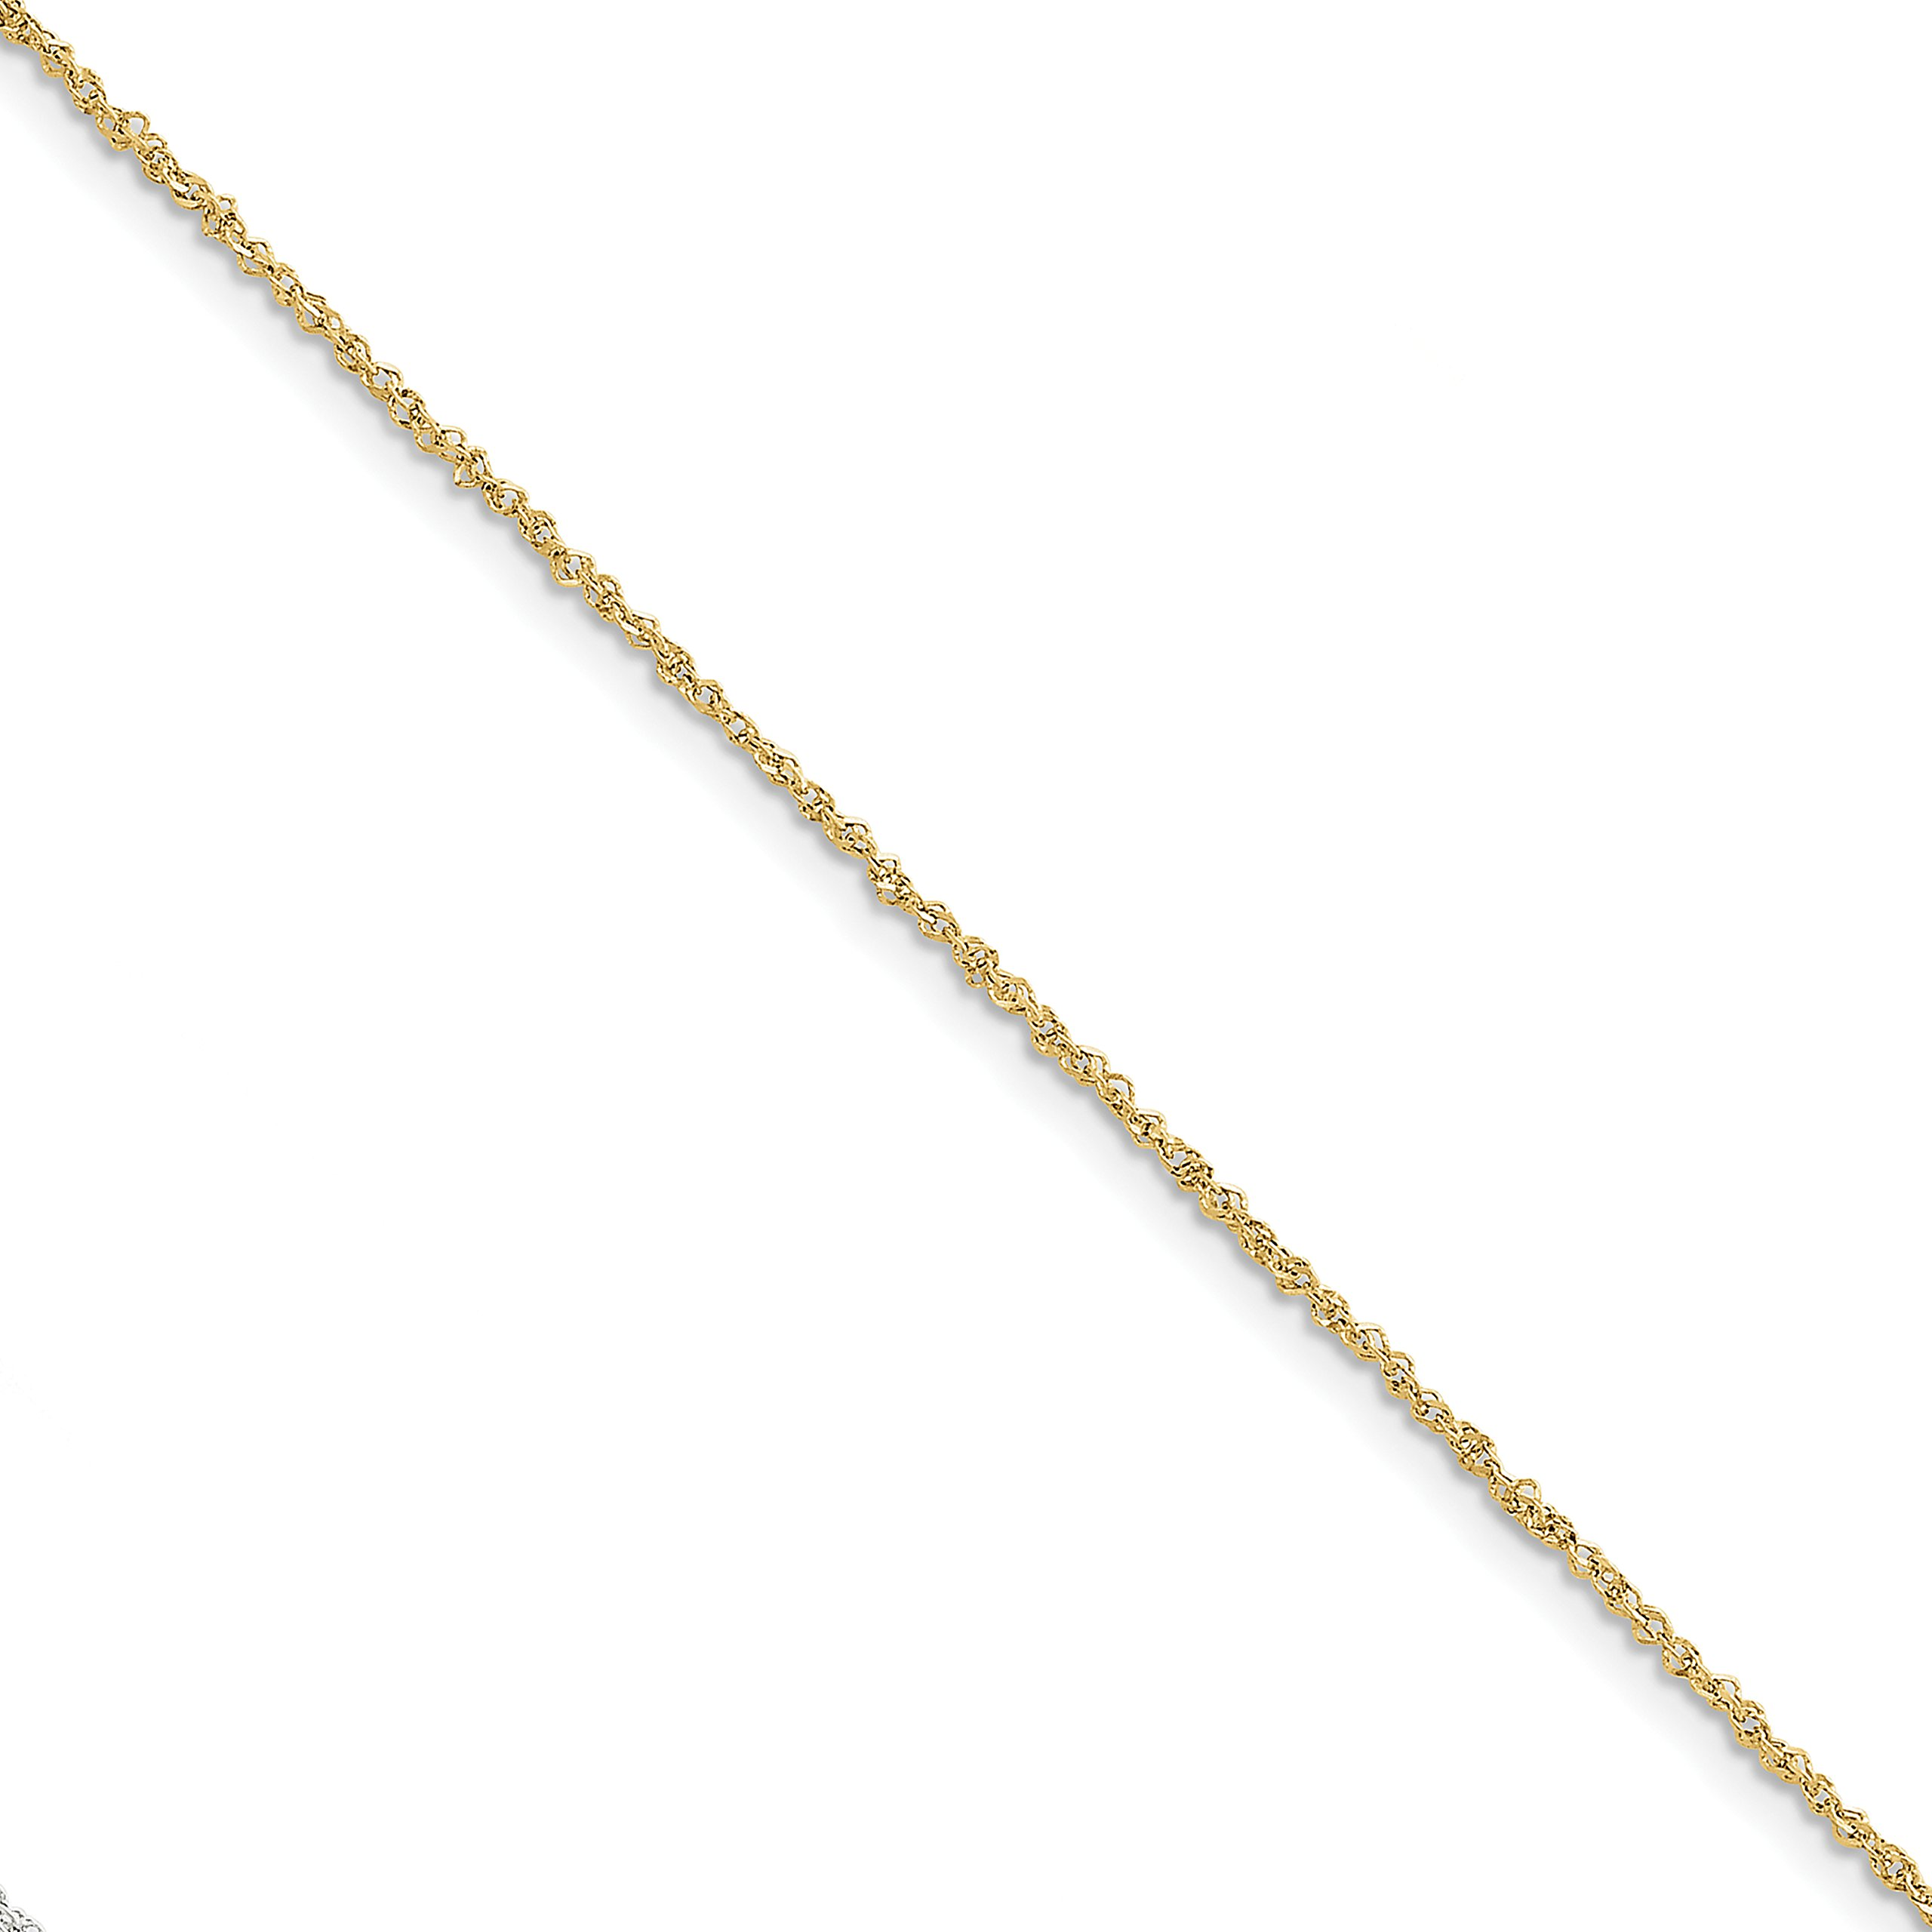 ICE CARATS 10k Yellow Gold 1.7mm Ropa Chain Anklet Ankle Beach Bracelet 10 Inch Rope Fine Jewelry Gift Set For Women Heart